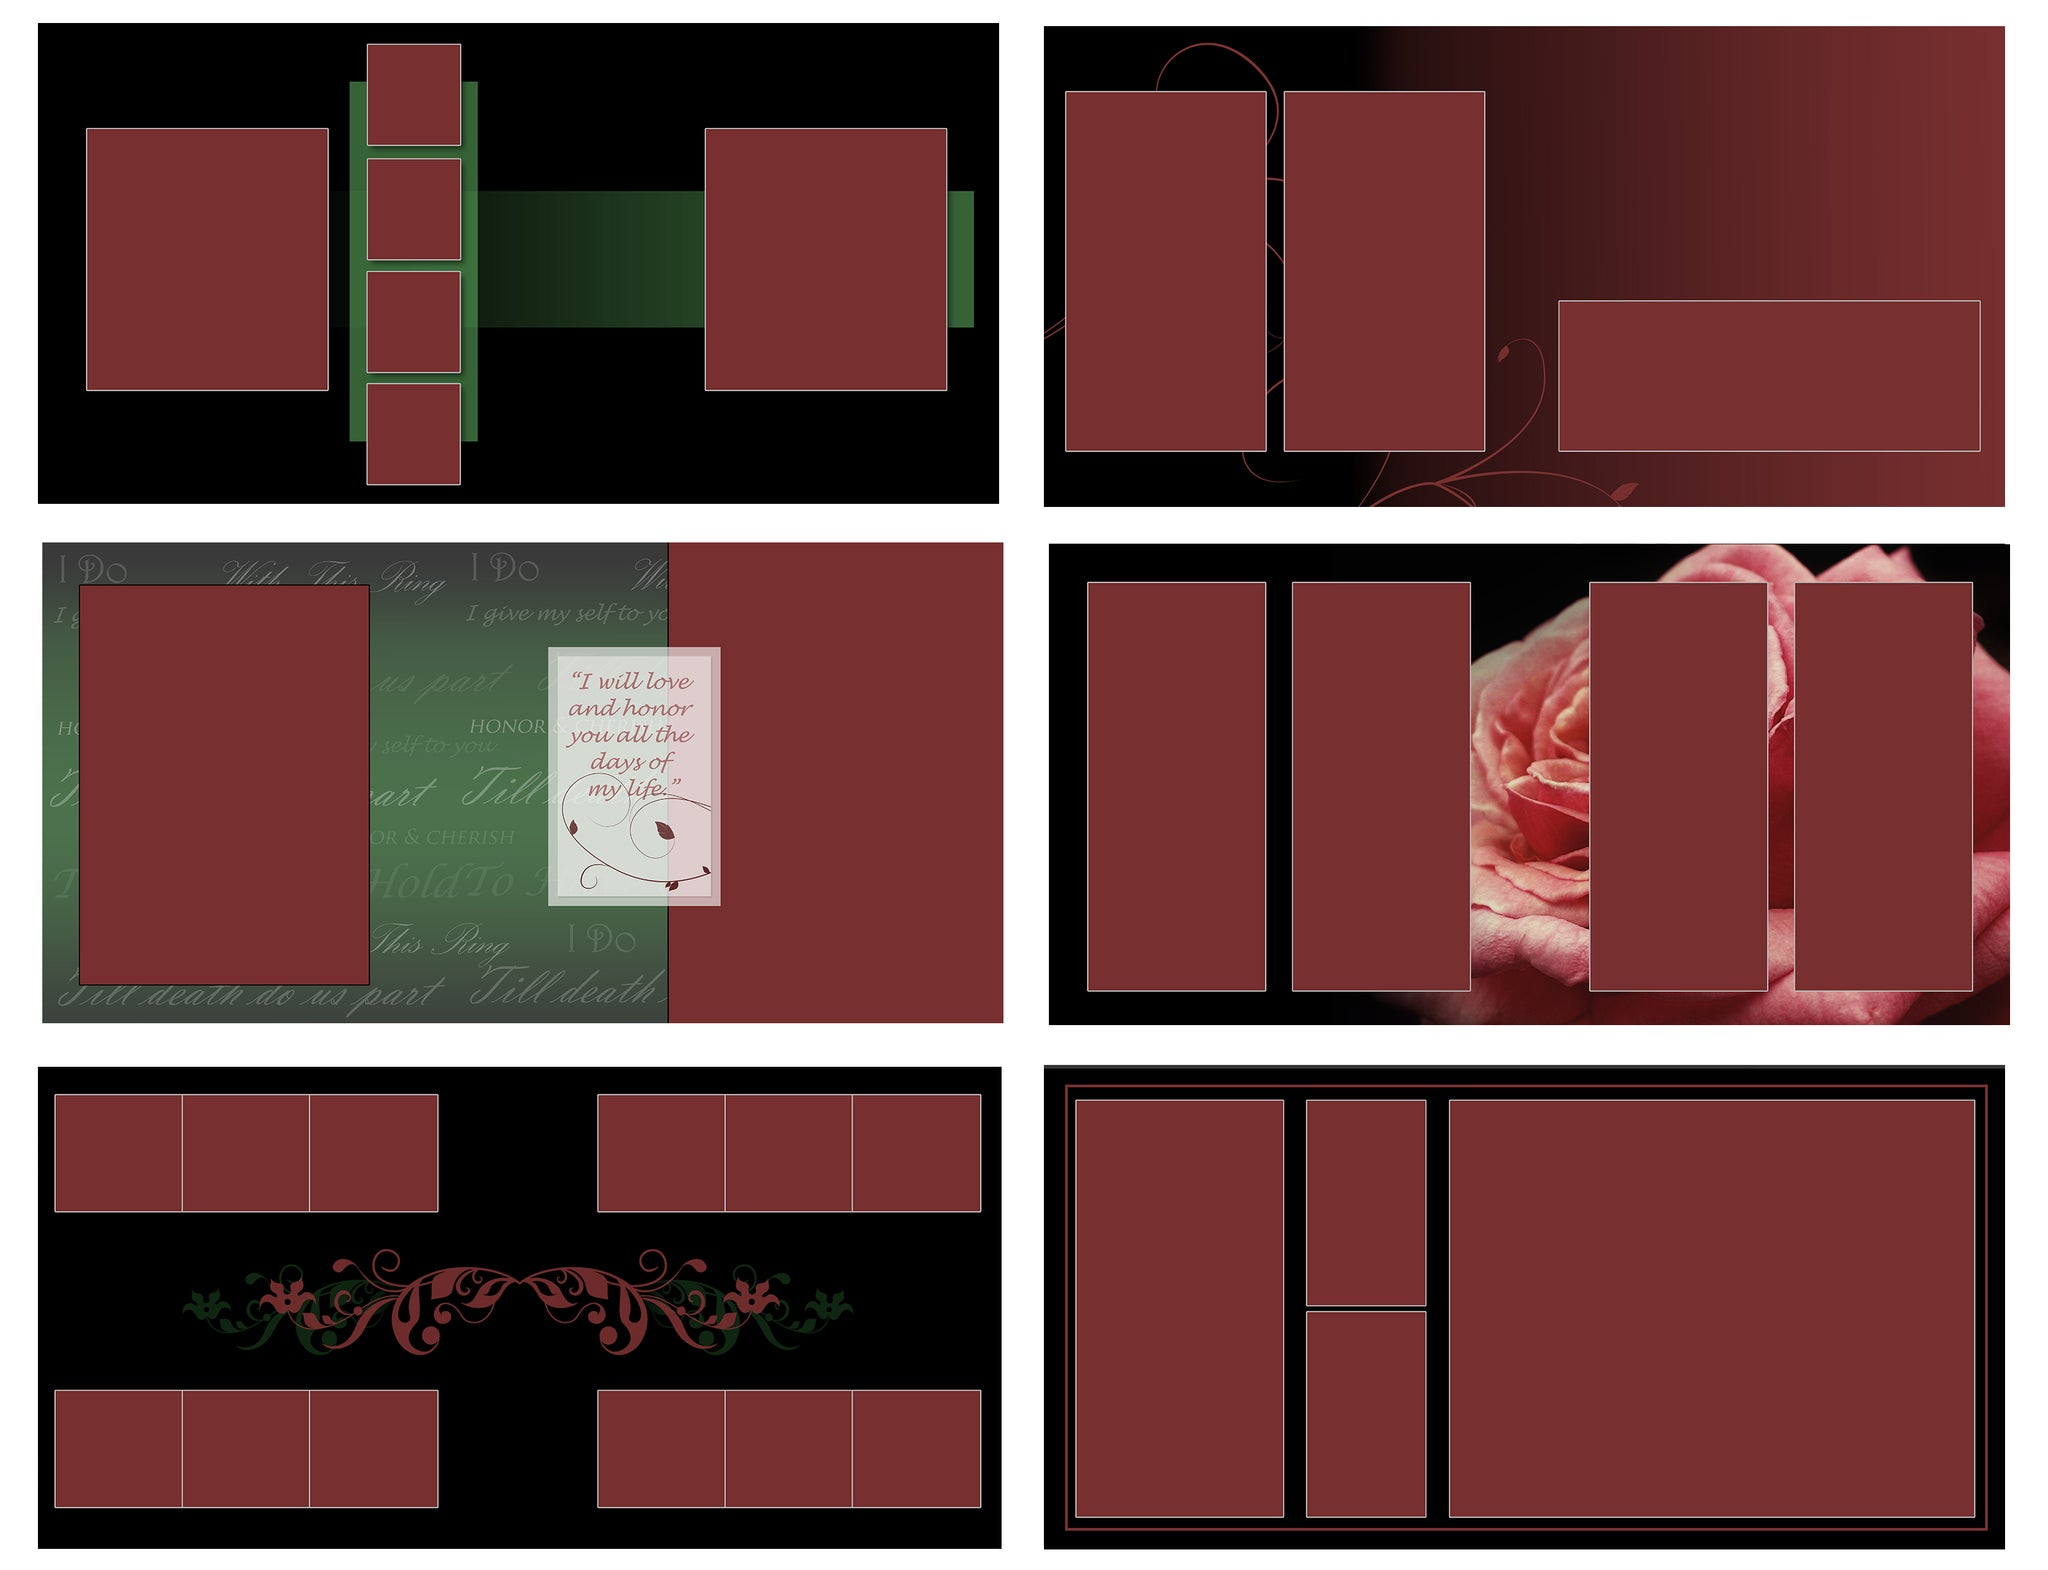 25 Rose StoryBoard Templates 2